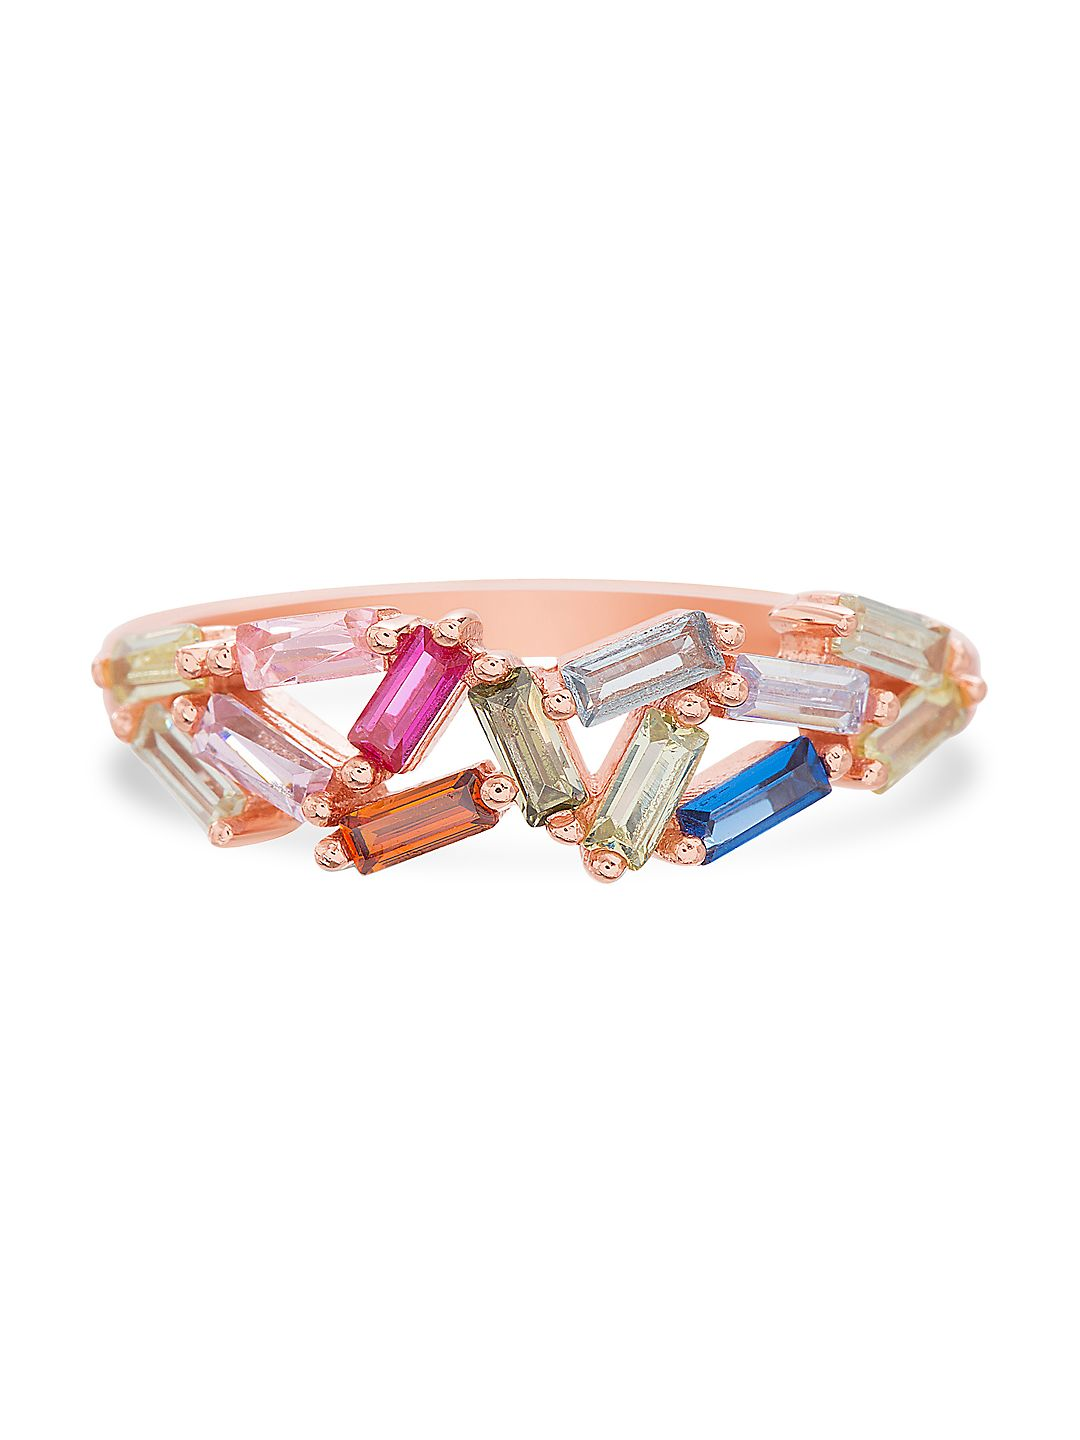 Lesa Michele Multicolored Crystal Baguette-Shaped Cluster Style Ring